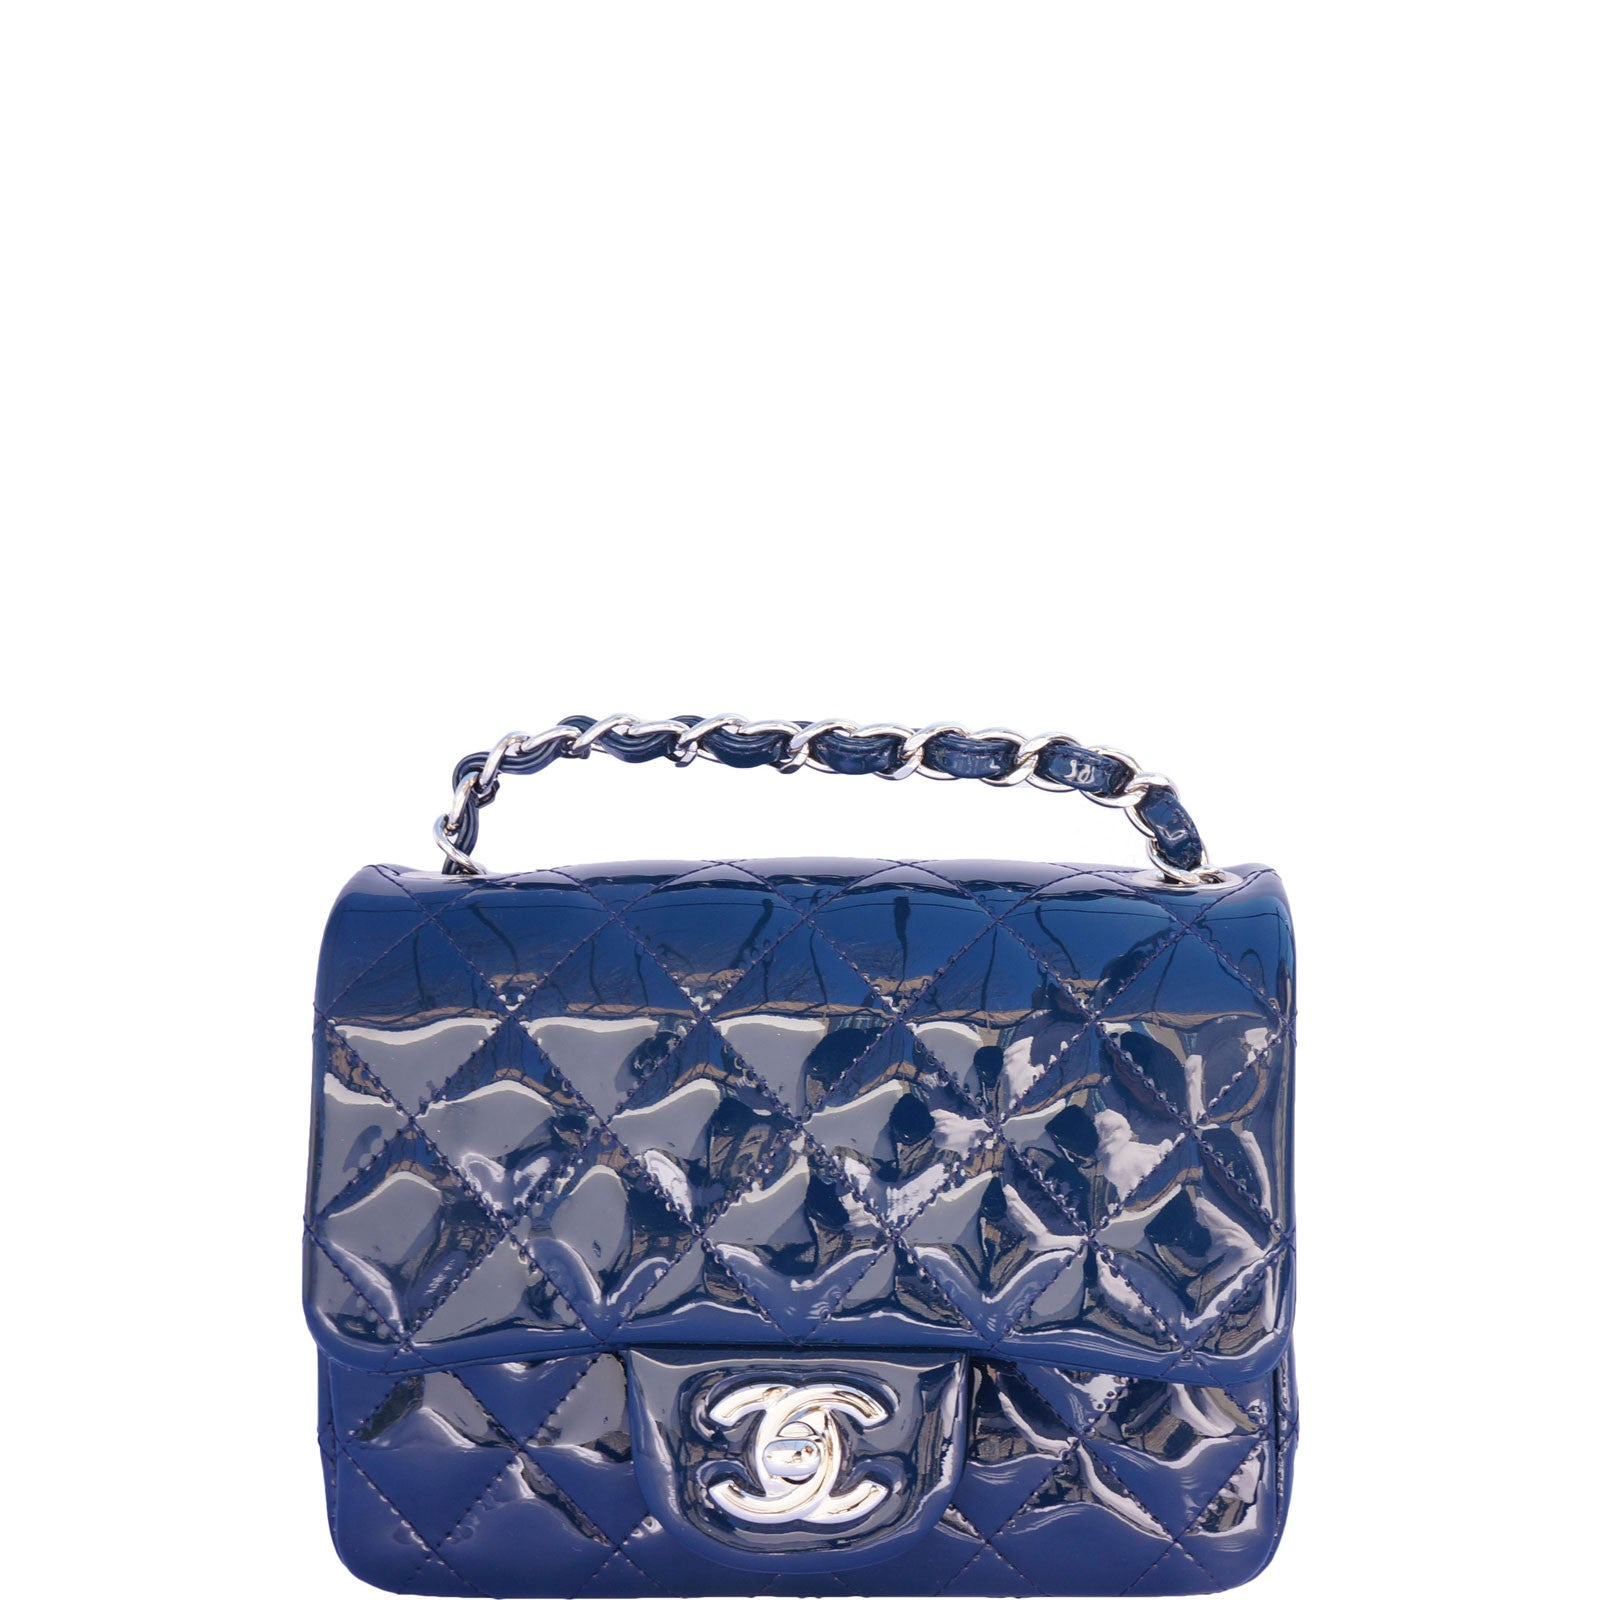 62829b8d2bcfde AUTHENTIC CHANEL MINI CLASSIC SQUARE FLAP BAG – leefluxury.com